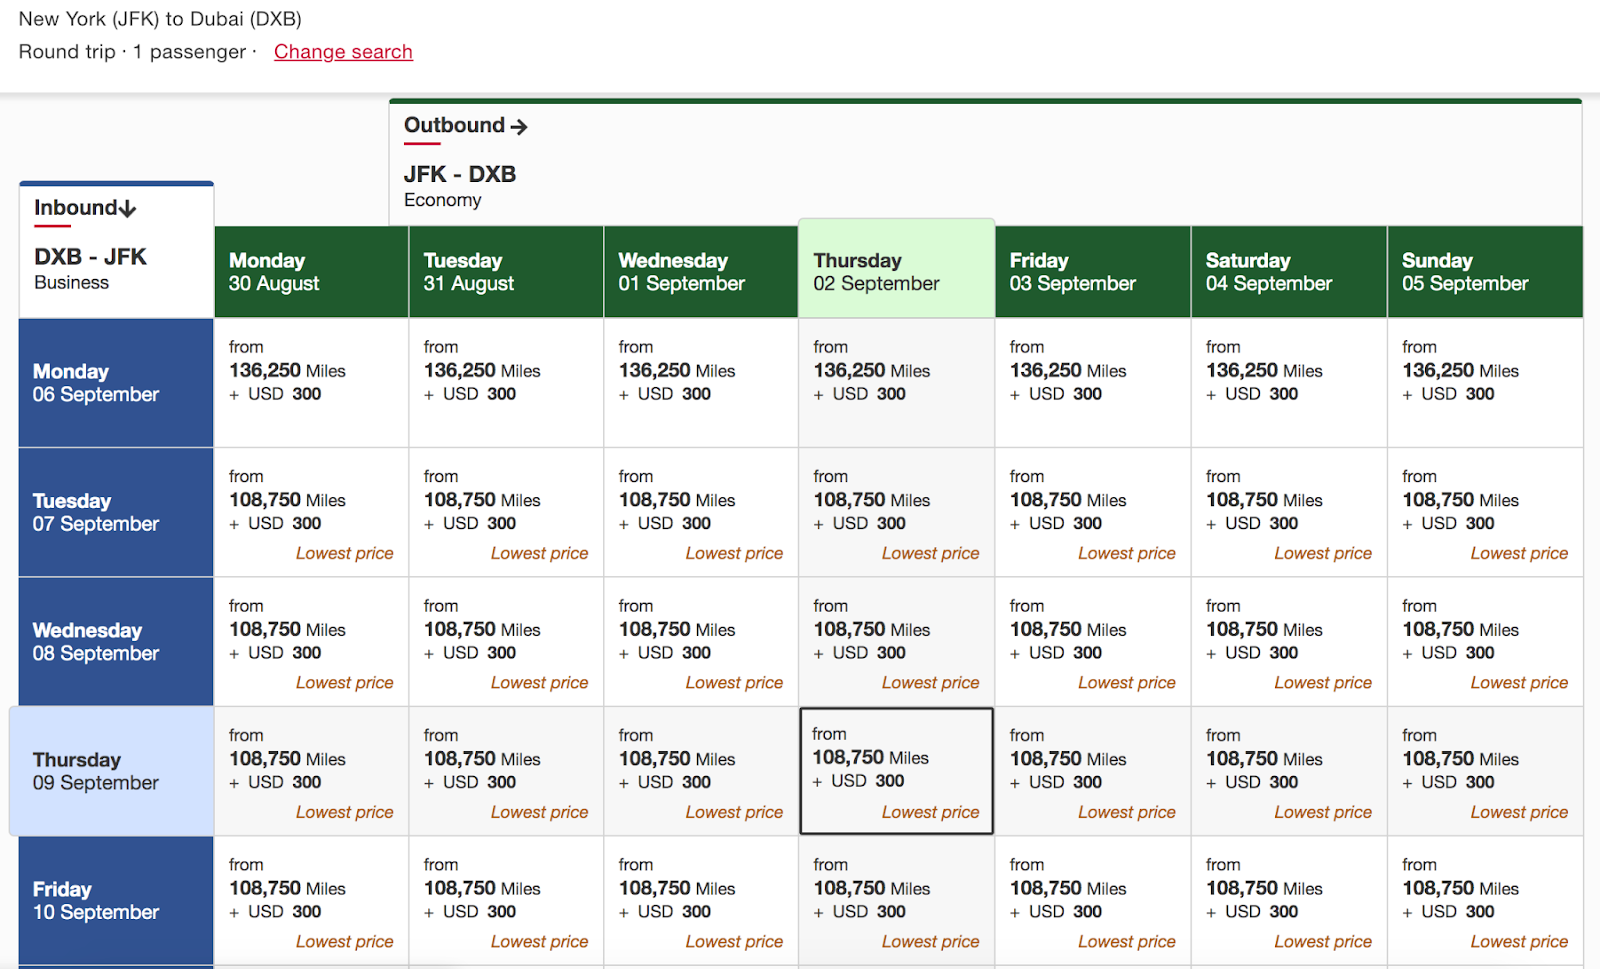 Business class round-trip itinerary